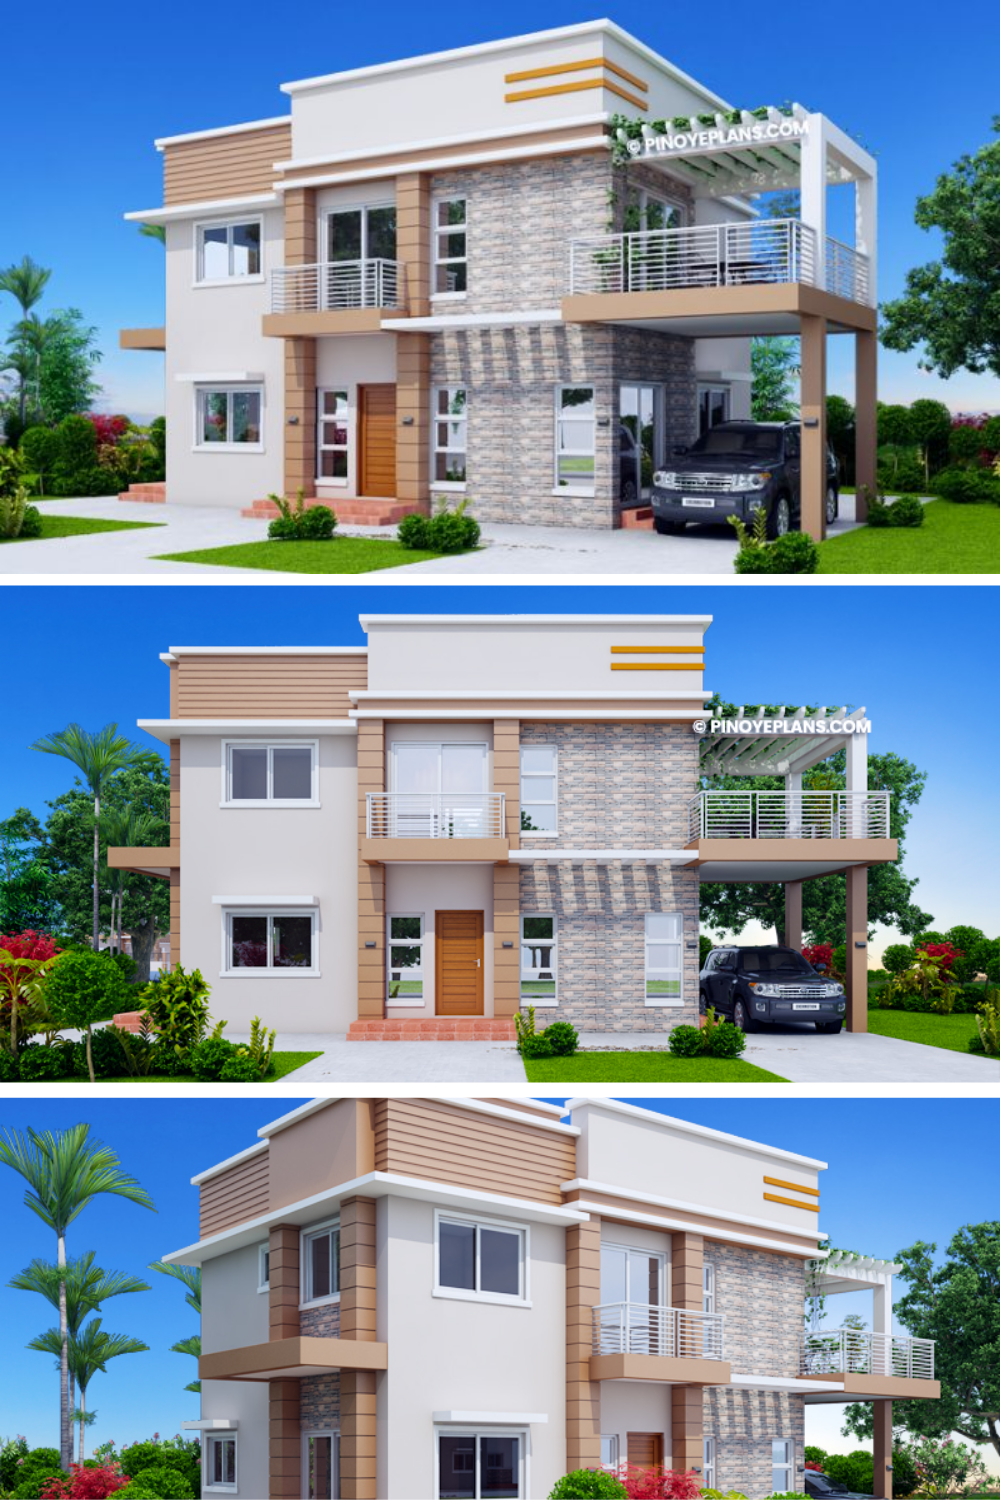 Pin on Two Storey House Plans with Roof Deck